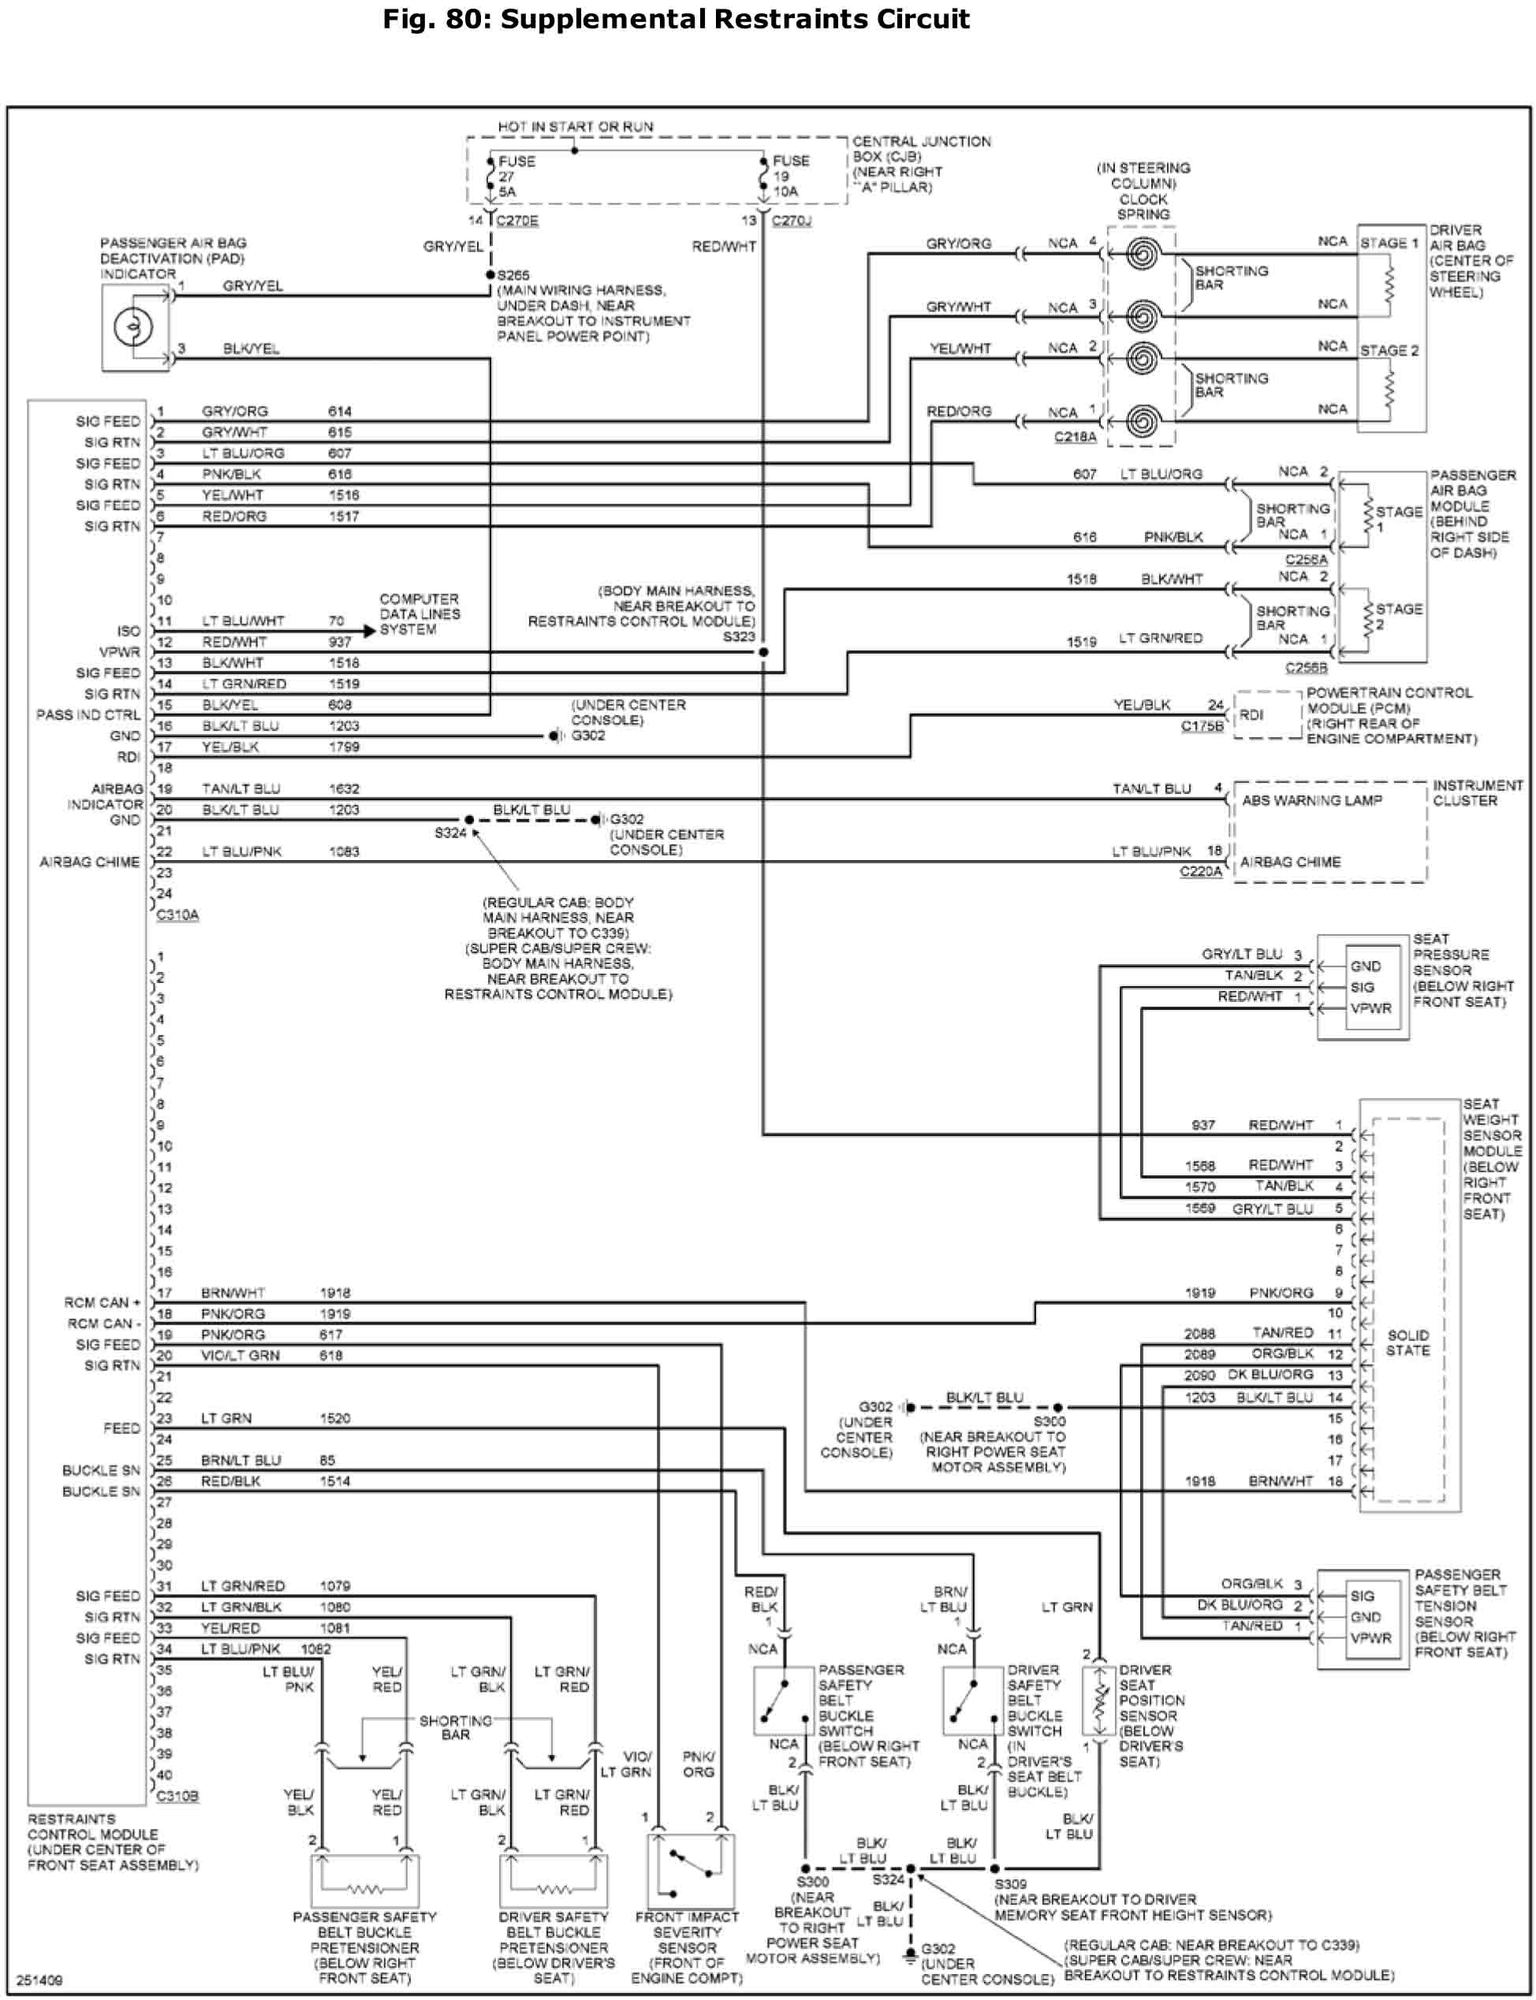 97 Mustang Center Console Wiring Diagram. . Wiring Diagram on